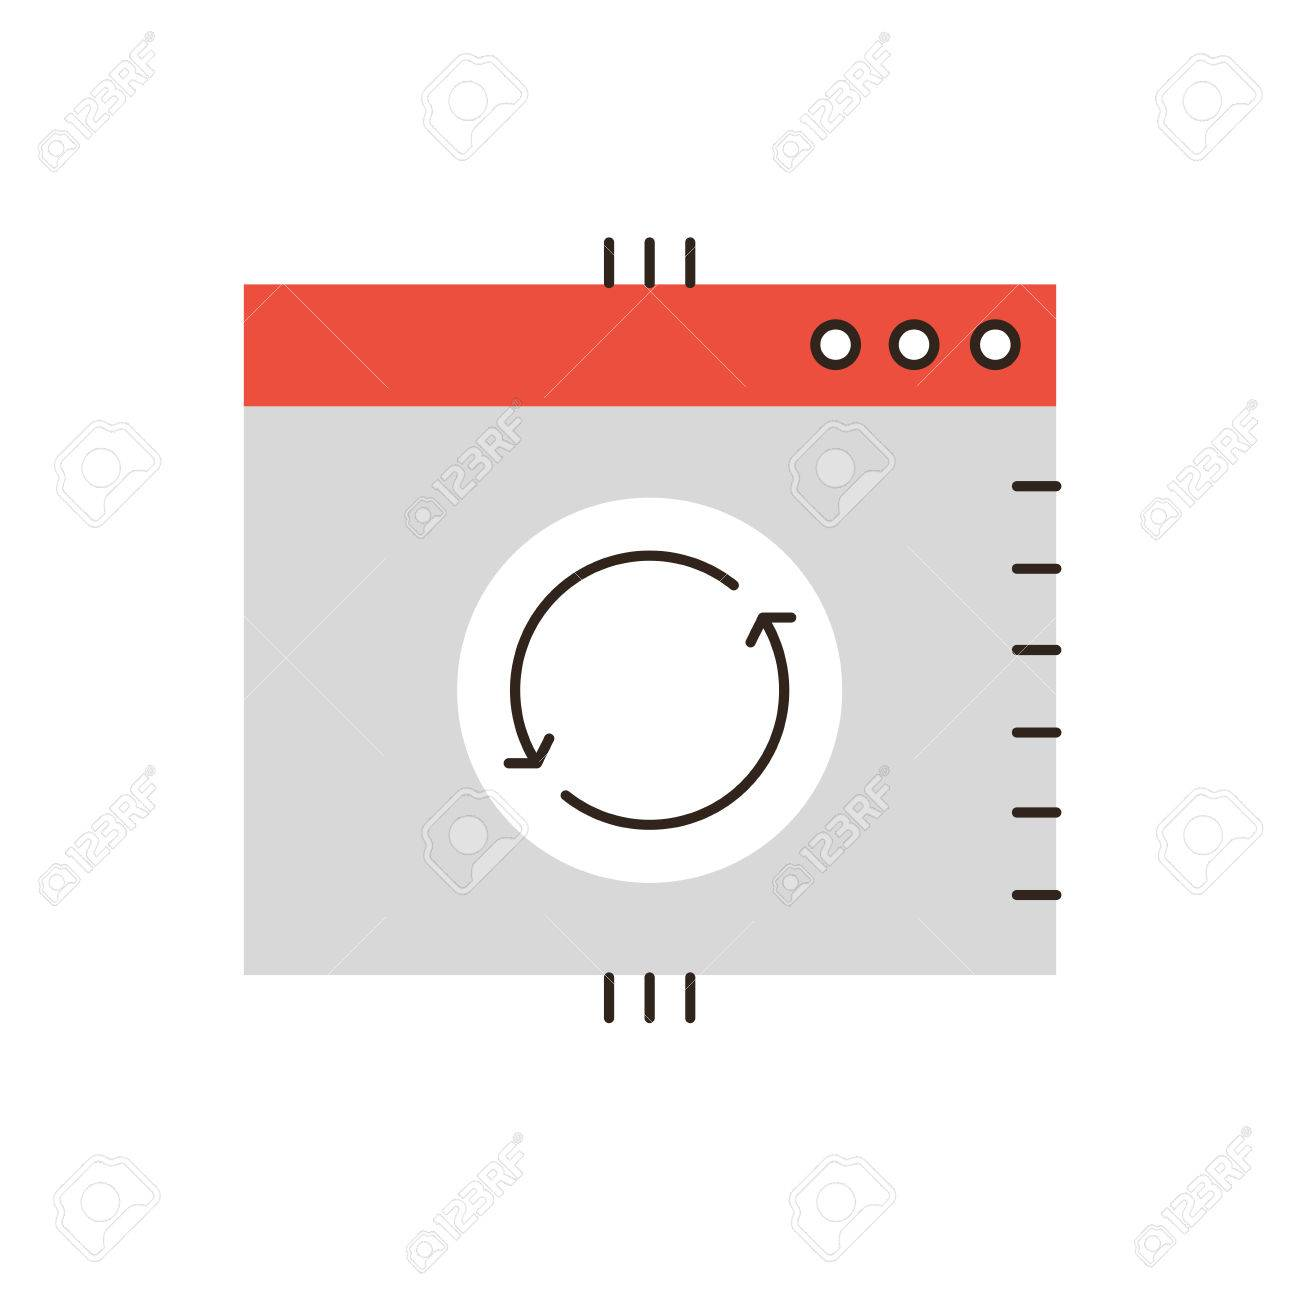 Thin Line Icon With Flat Design Element Of Update System Window Message Upgrade Software Sync